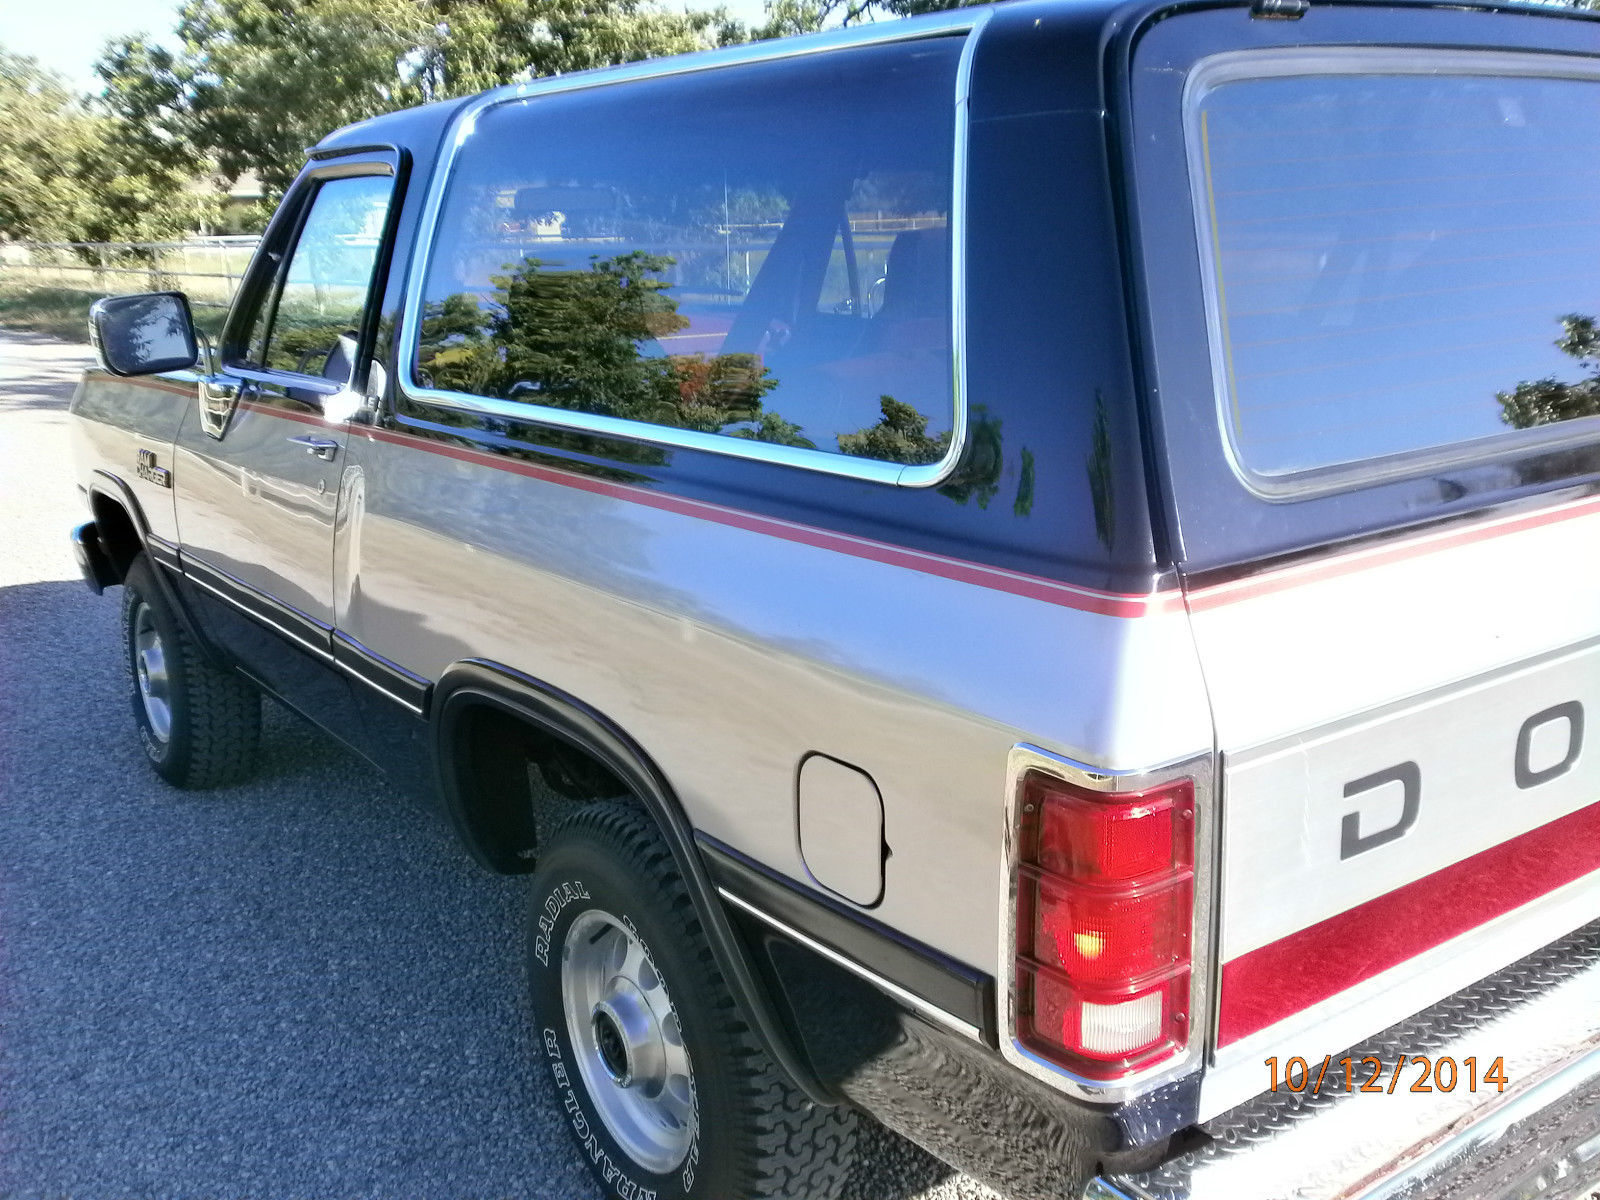 91 DODGE RAMCHARGER SE 4X4 2dr V-8 SUV NICEST ONE I\'VE EVER SEEN ...